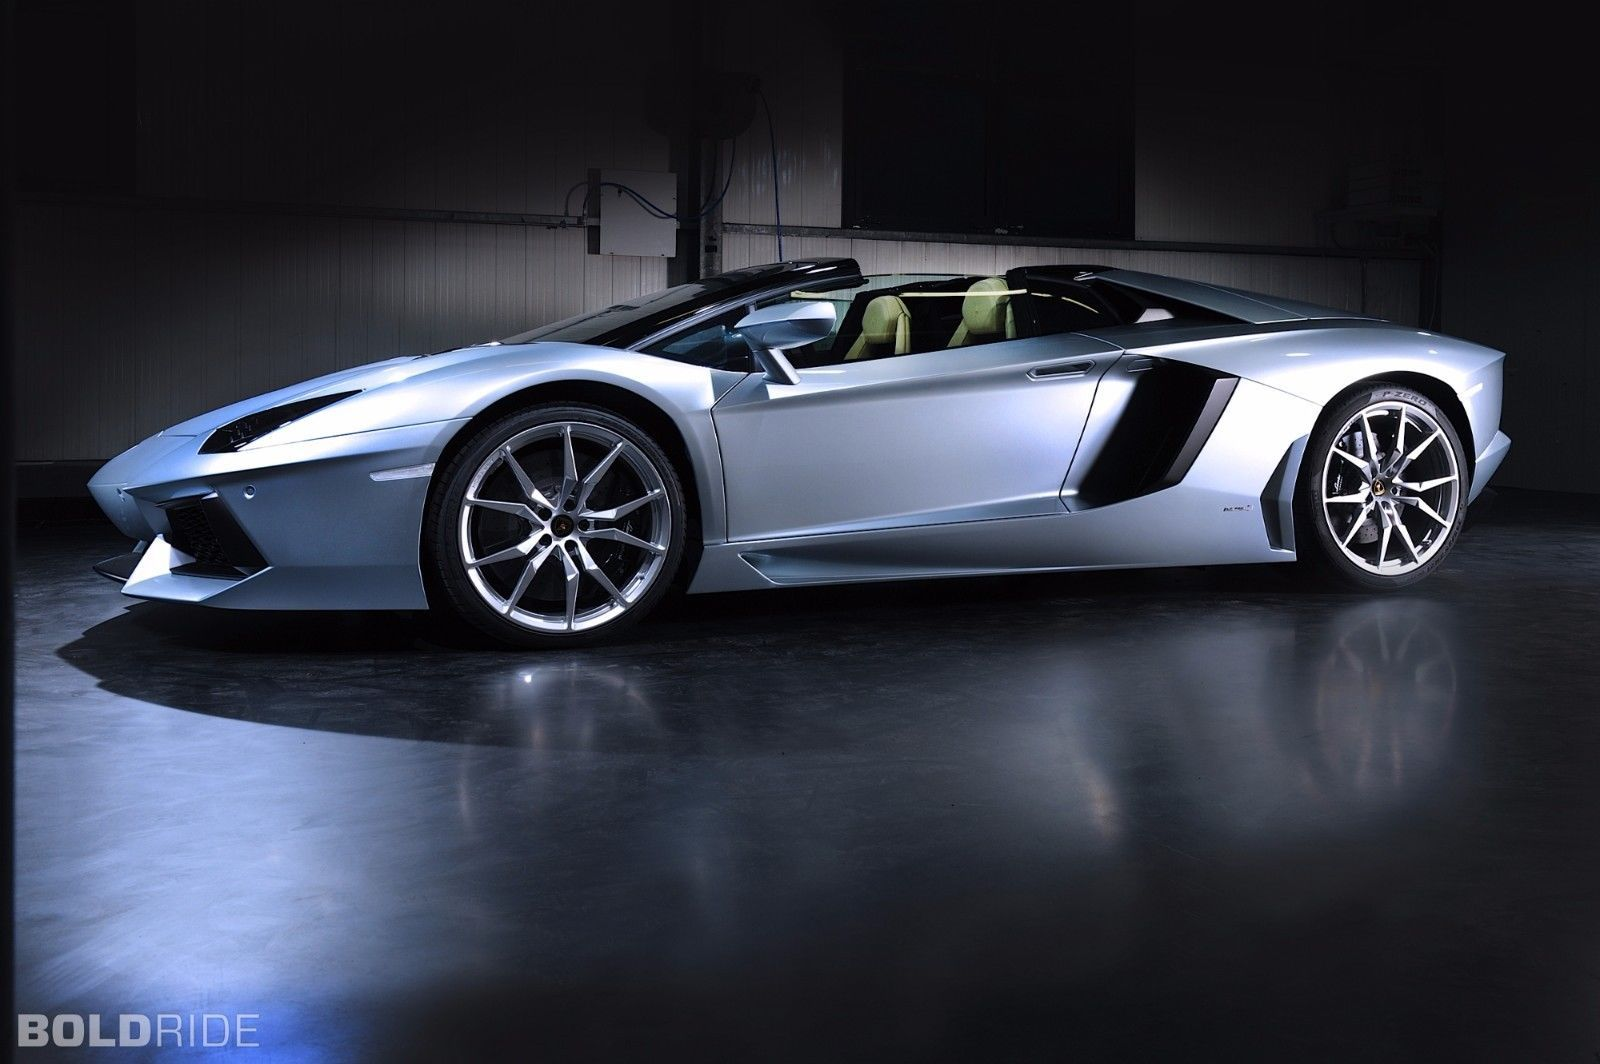 Awesome Great Roadster 2013 Lamborghini Aventador LP700 Poster 19x